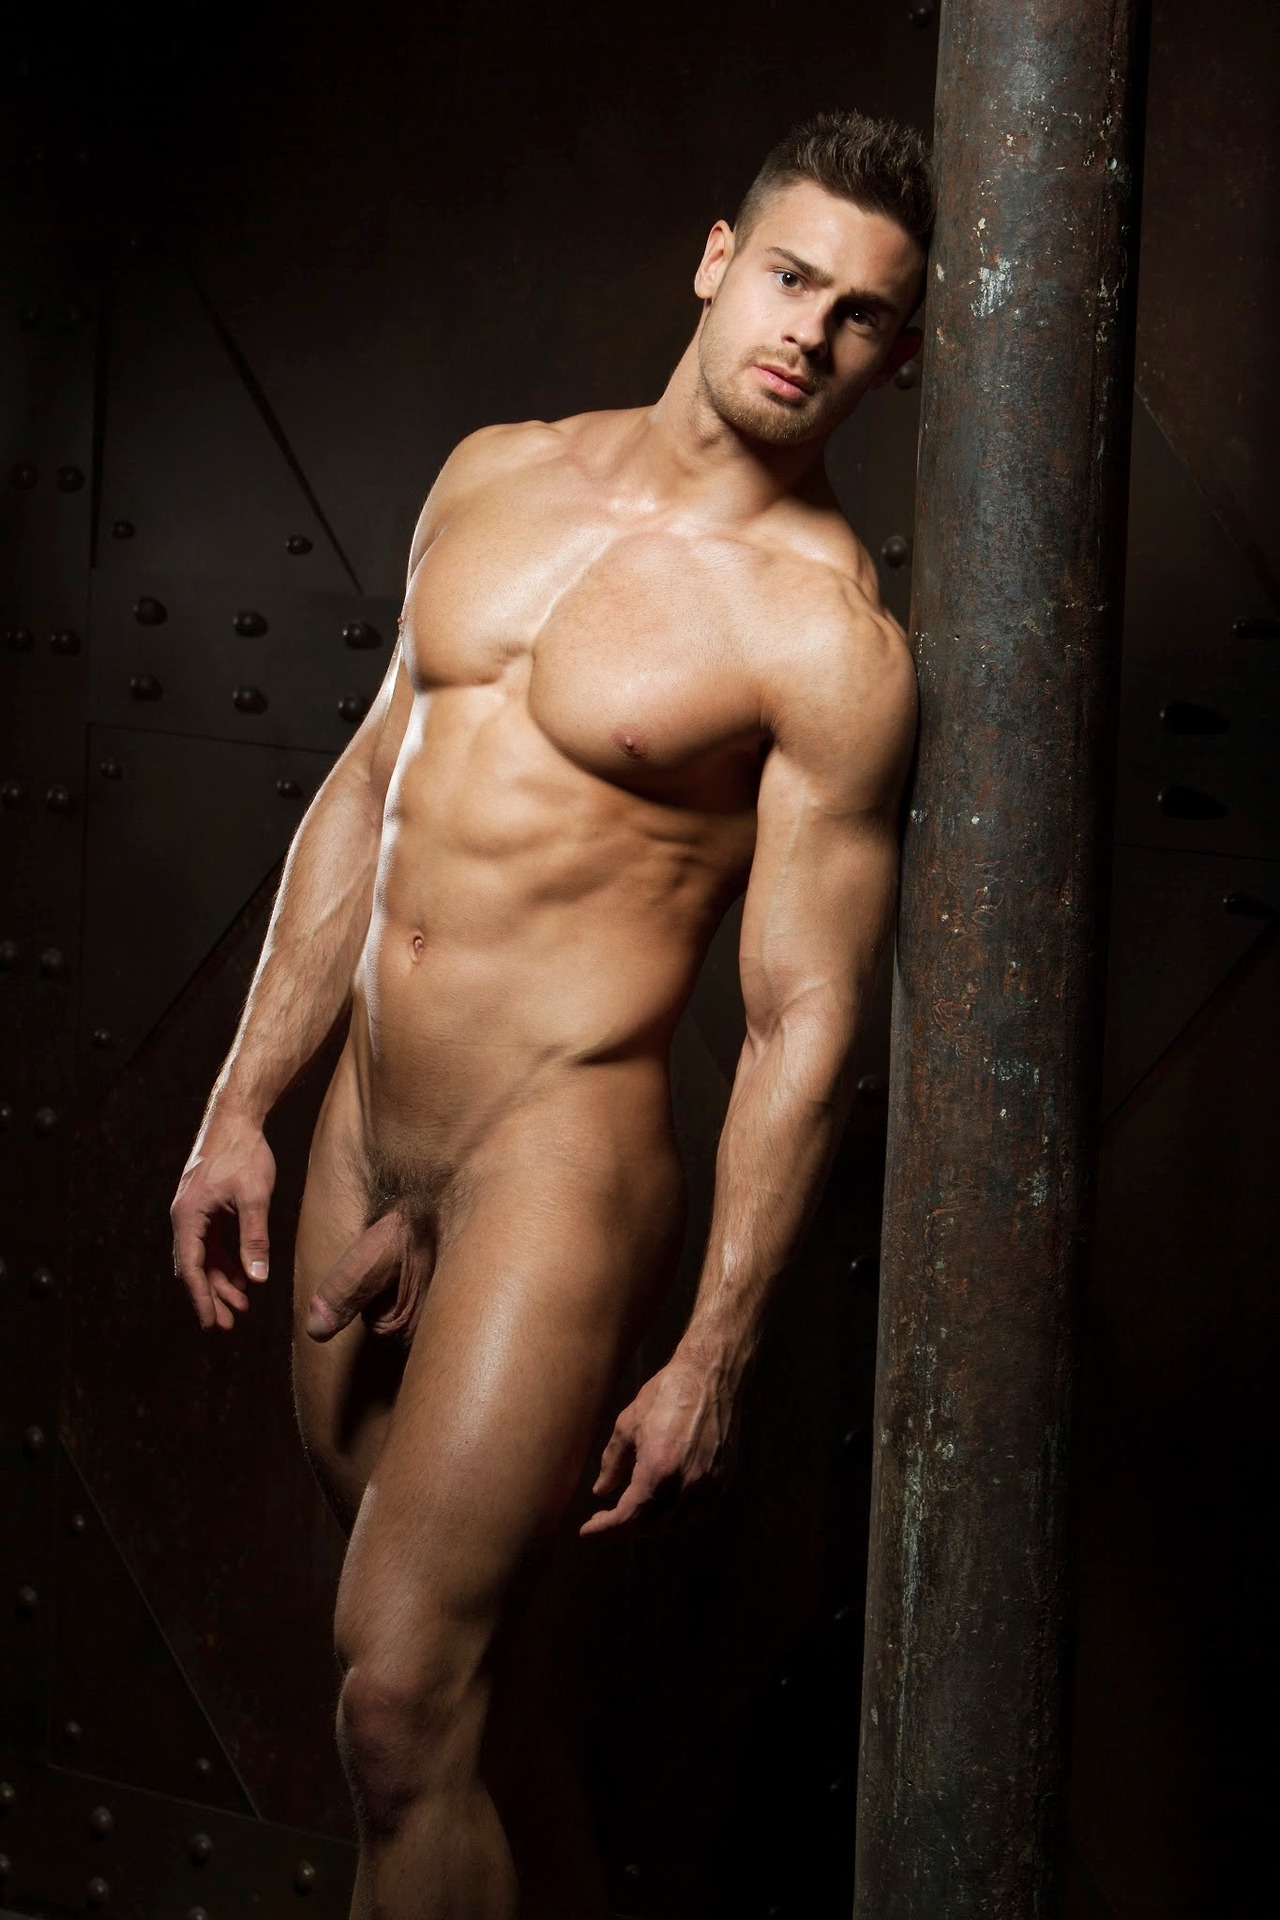 nude-male-models-sex-tits